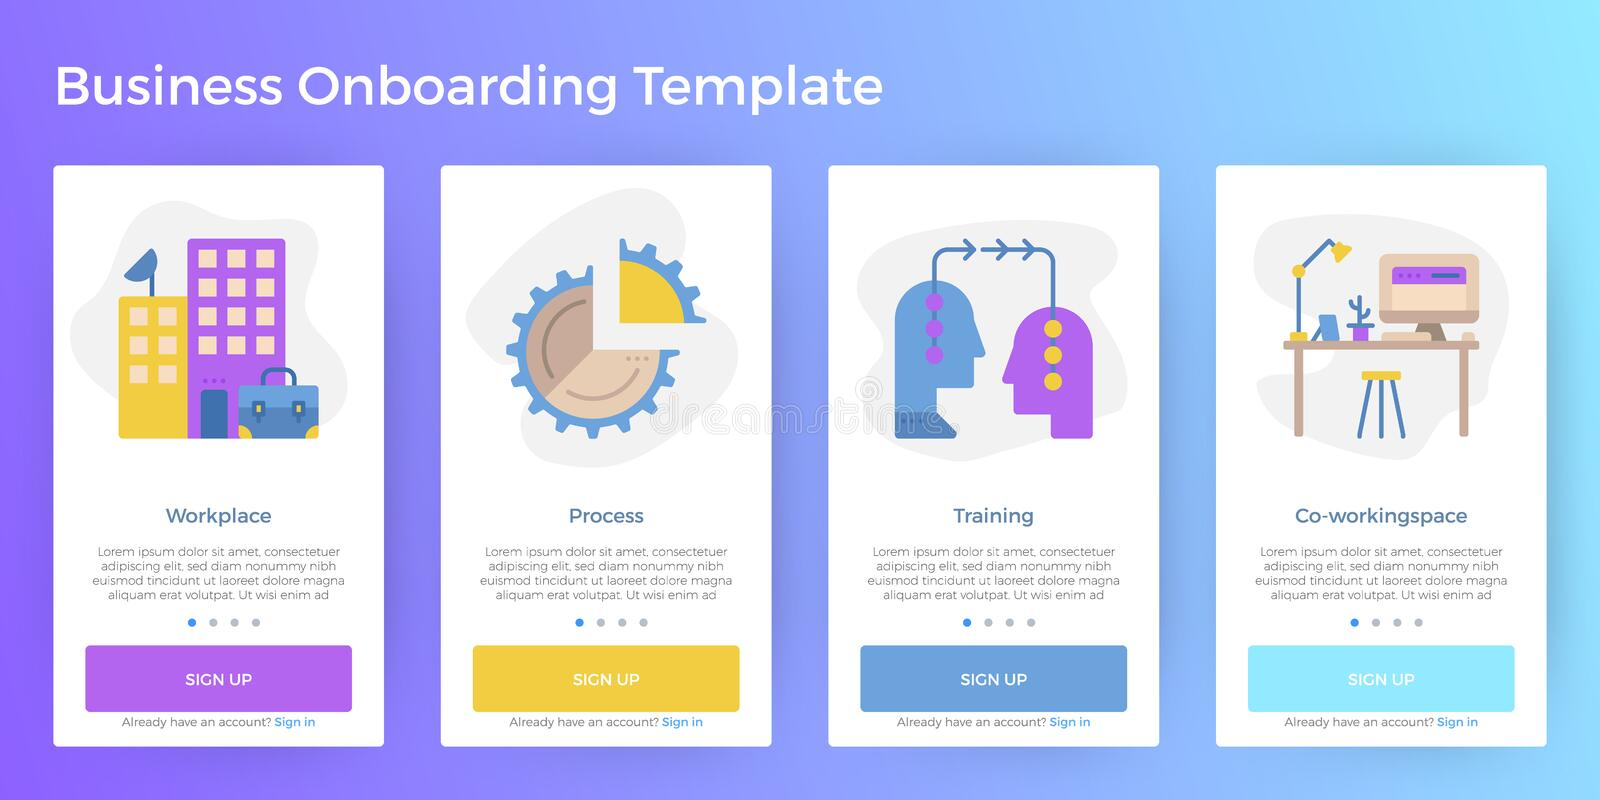 Business Mobile App Onboarding Template. Business illustration mobile screen app onboarding user interface template for smartphone website stock illustration